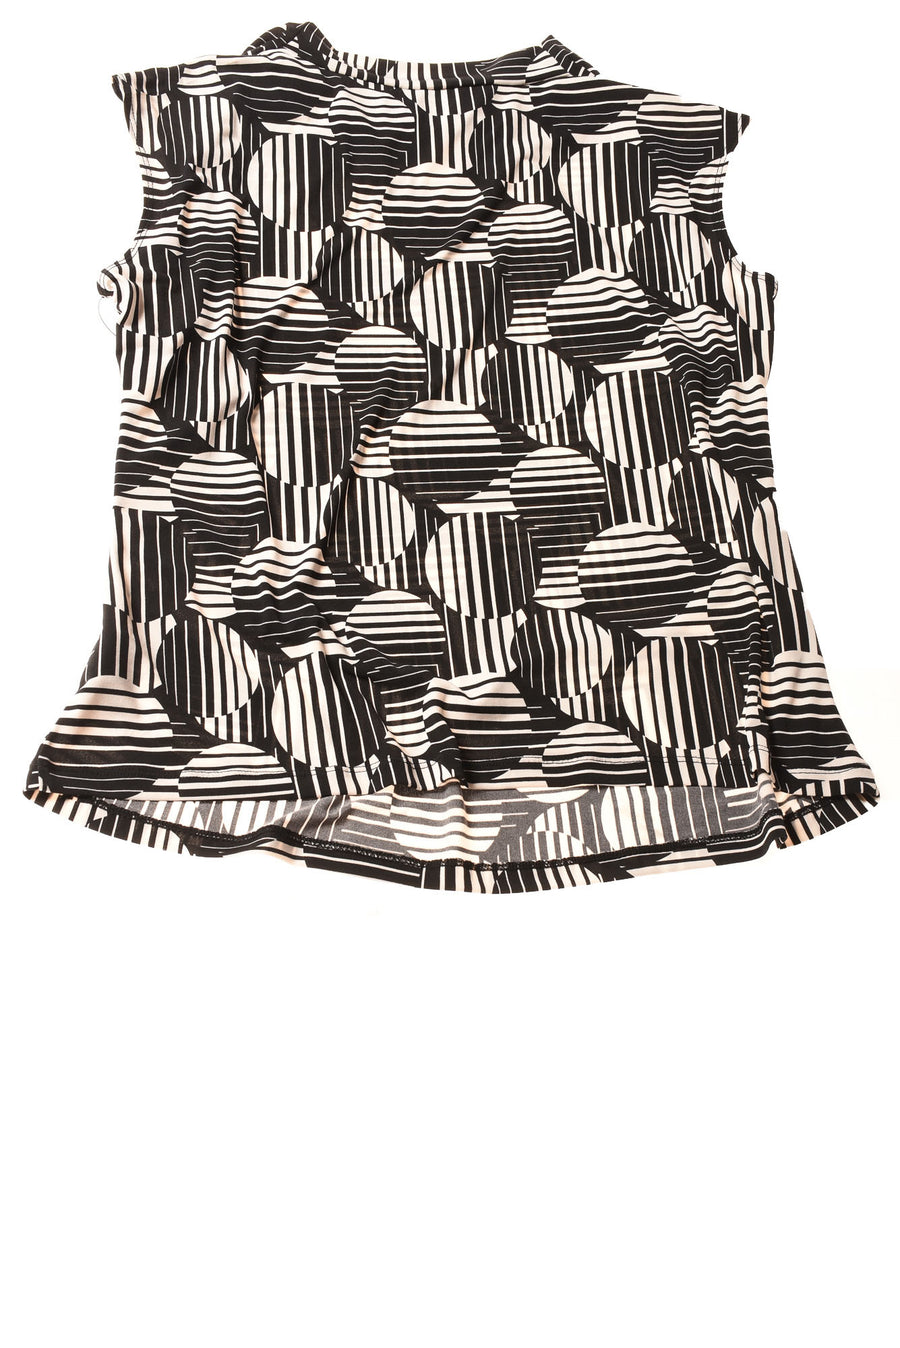 NEW Worthington Women's Top 1X Black & White / Print